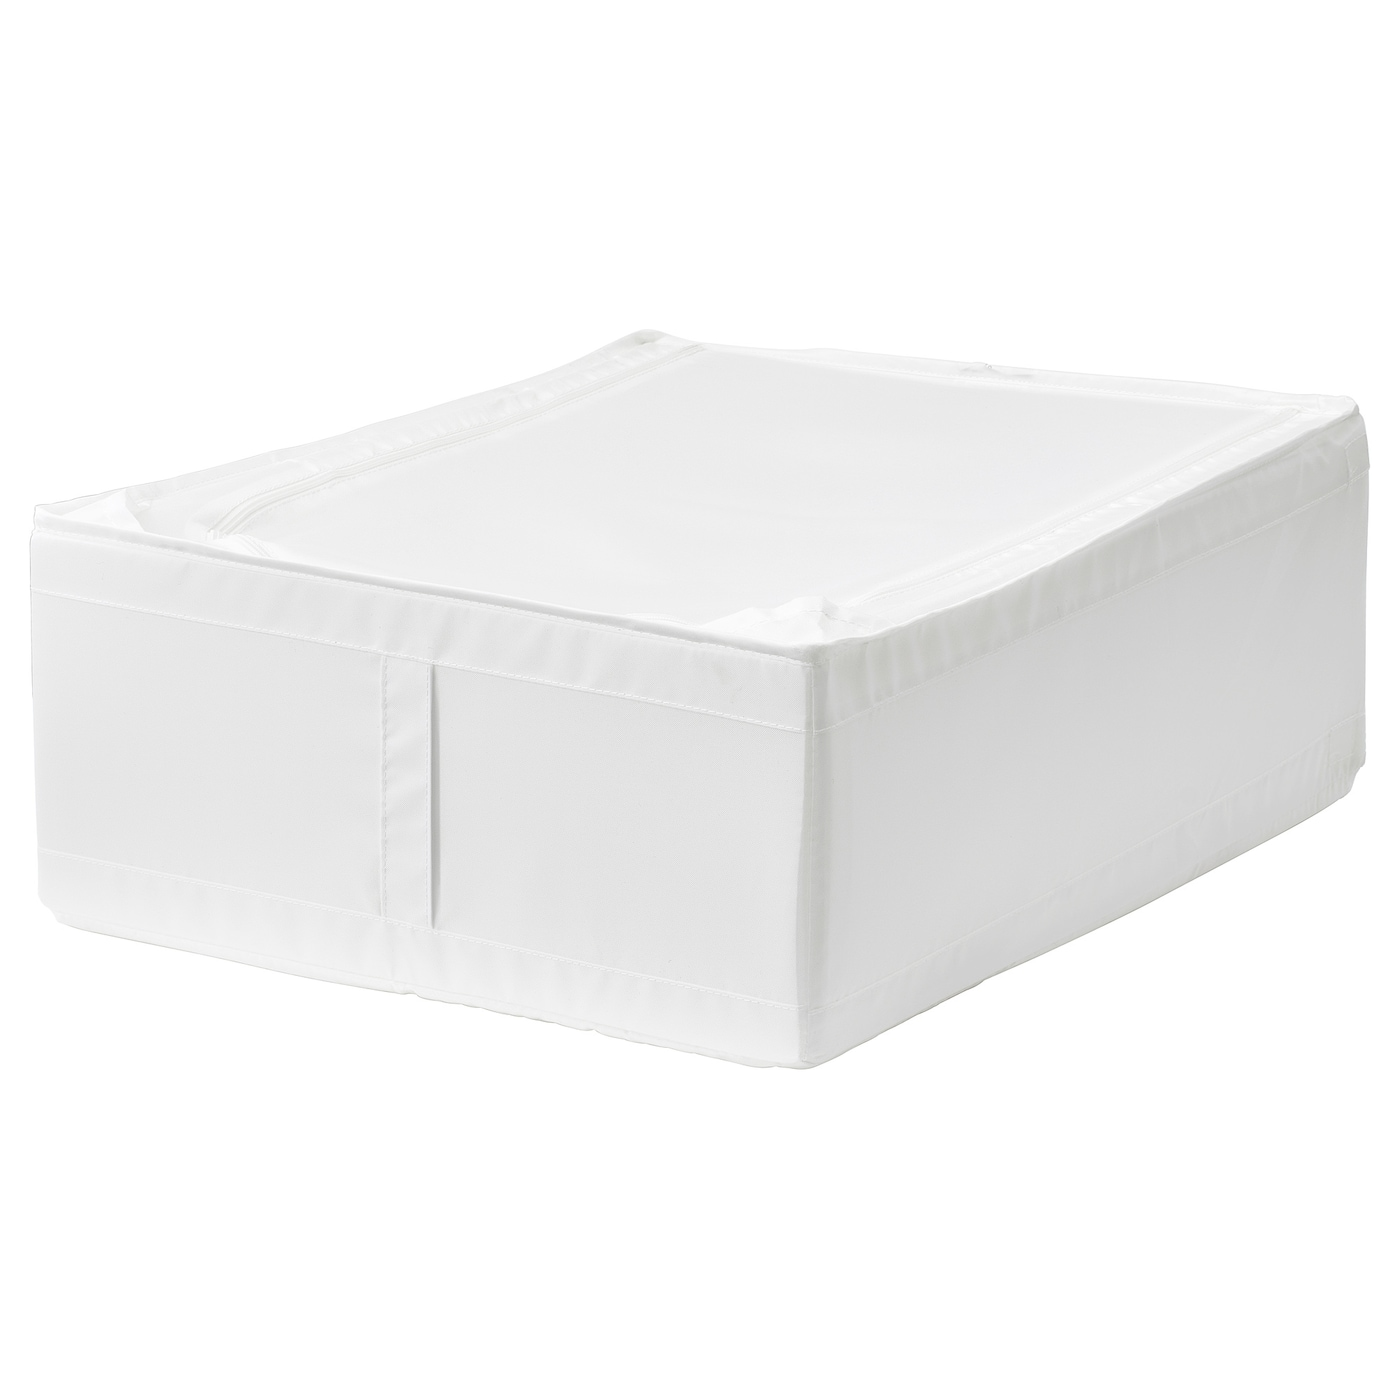 Picture of: Skubb Opbevaring Hvid 44x55x19 Cm Ikea